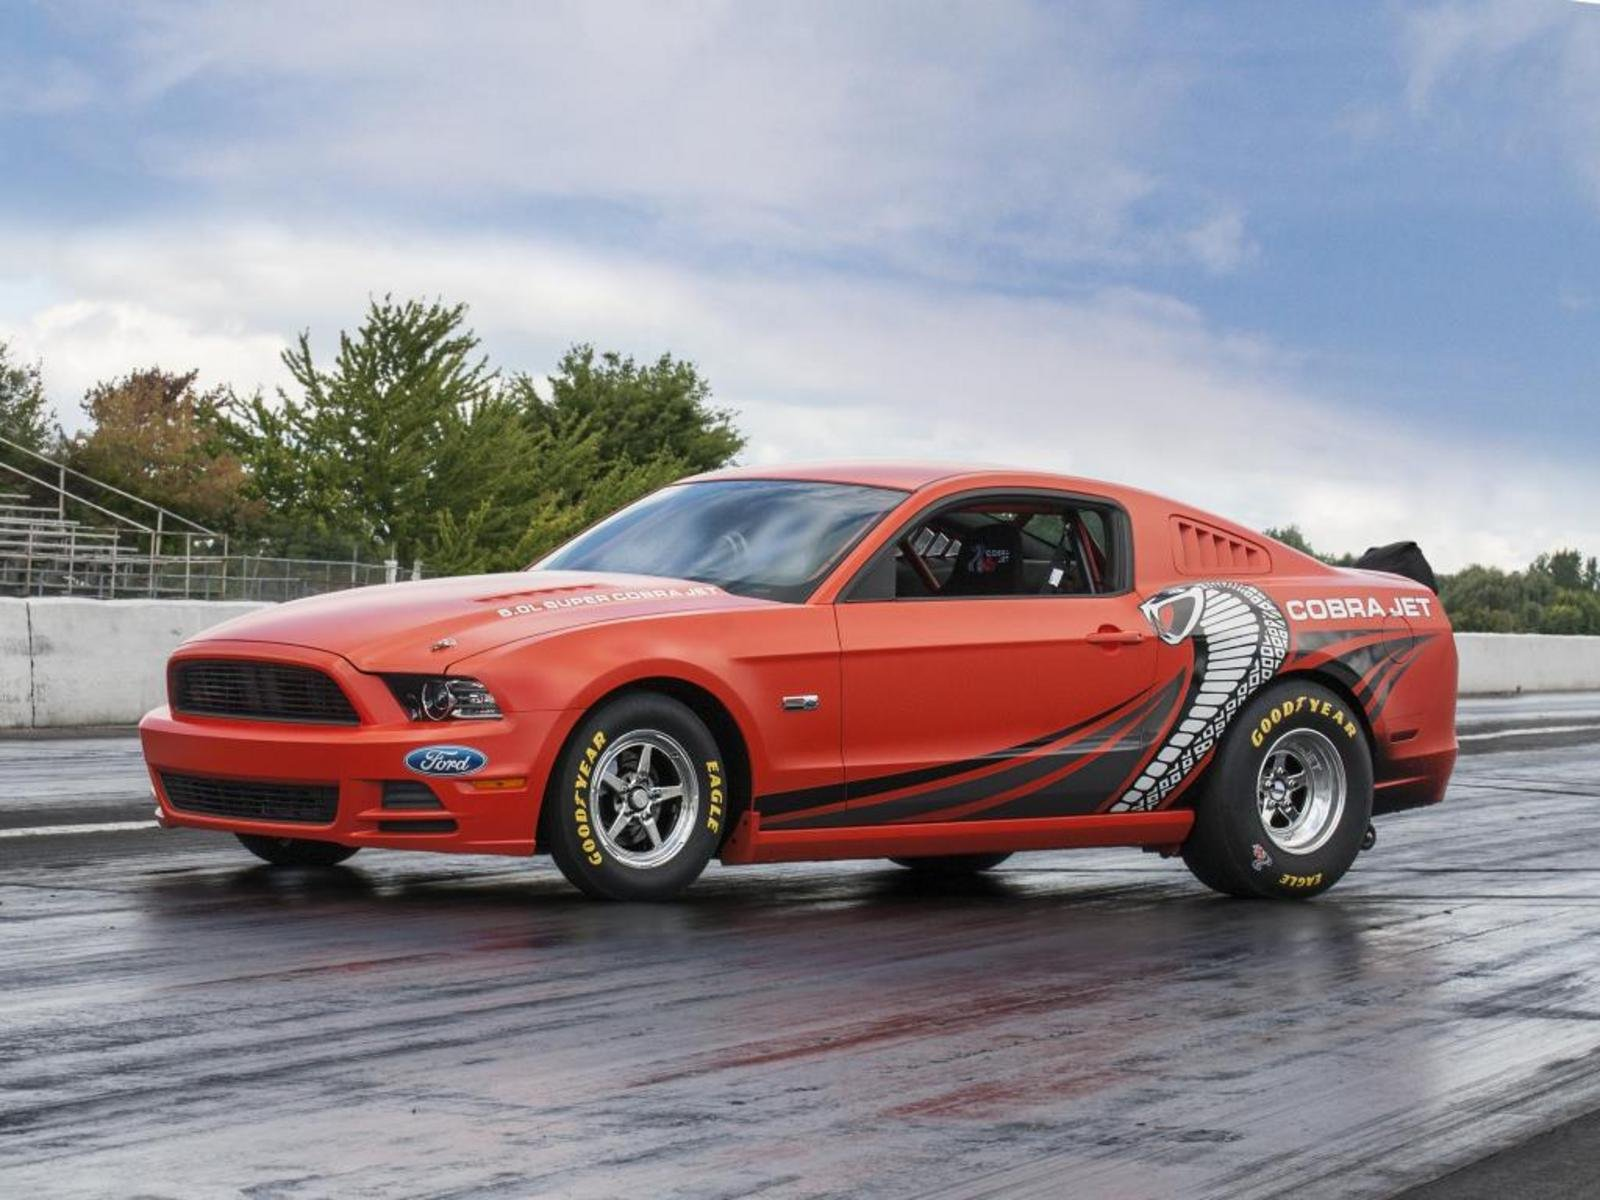 2014 ford mustang cobra jet nhra prototype review top speed. Black Bedroom Furniture Sets. Home Design Ideas